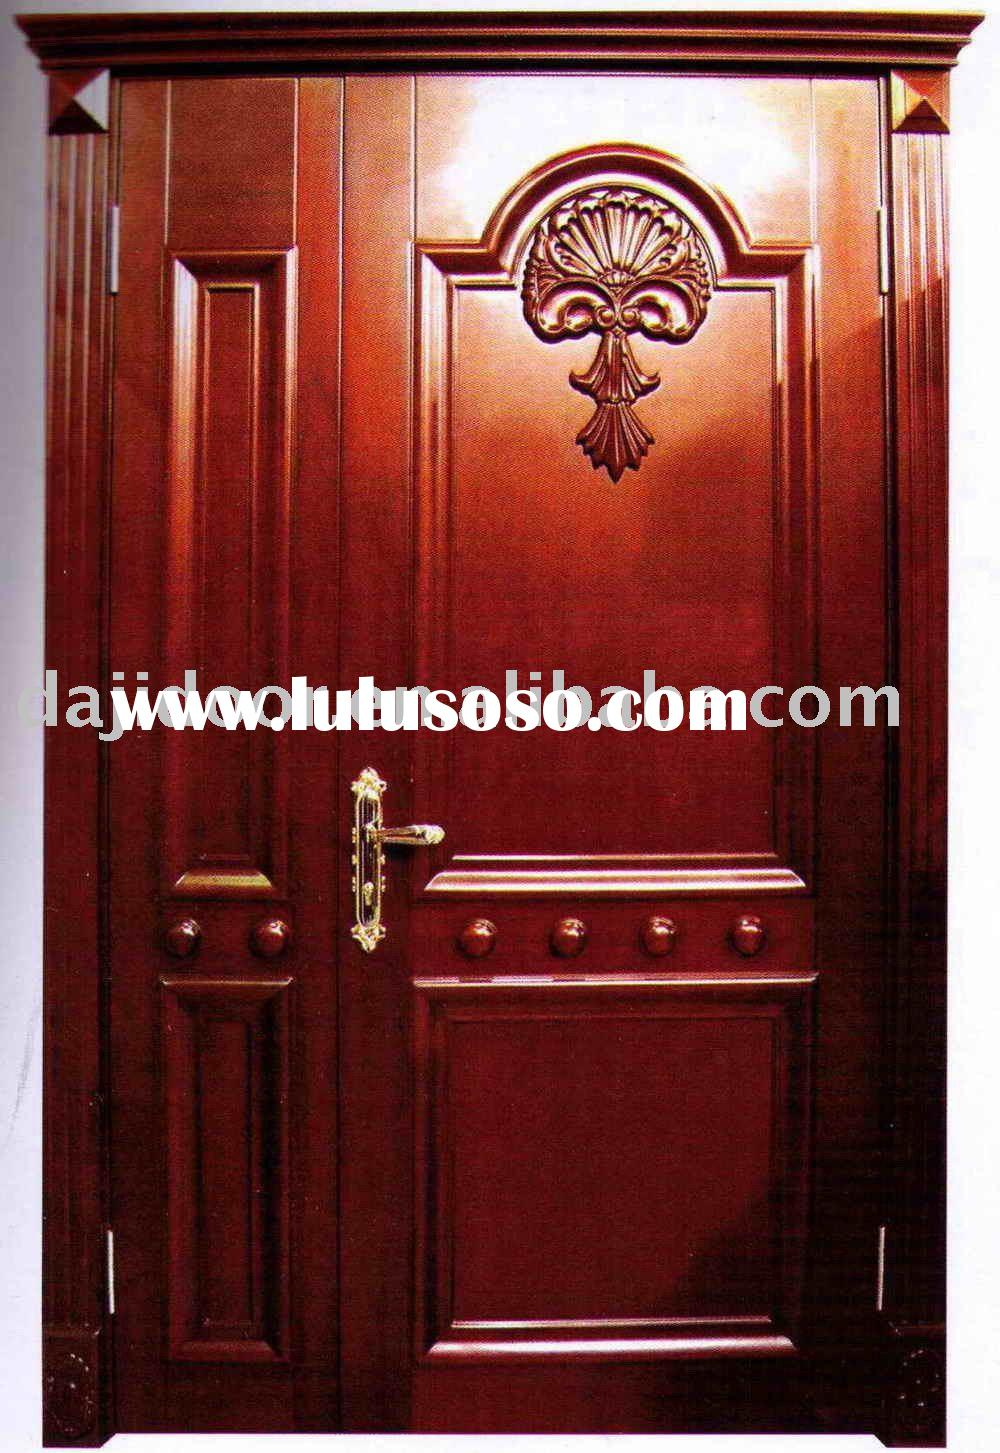 Home Main Door Designs - Home Ideas Designs